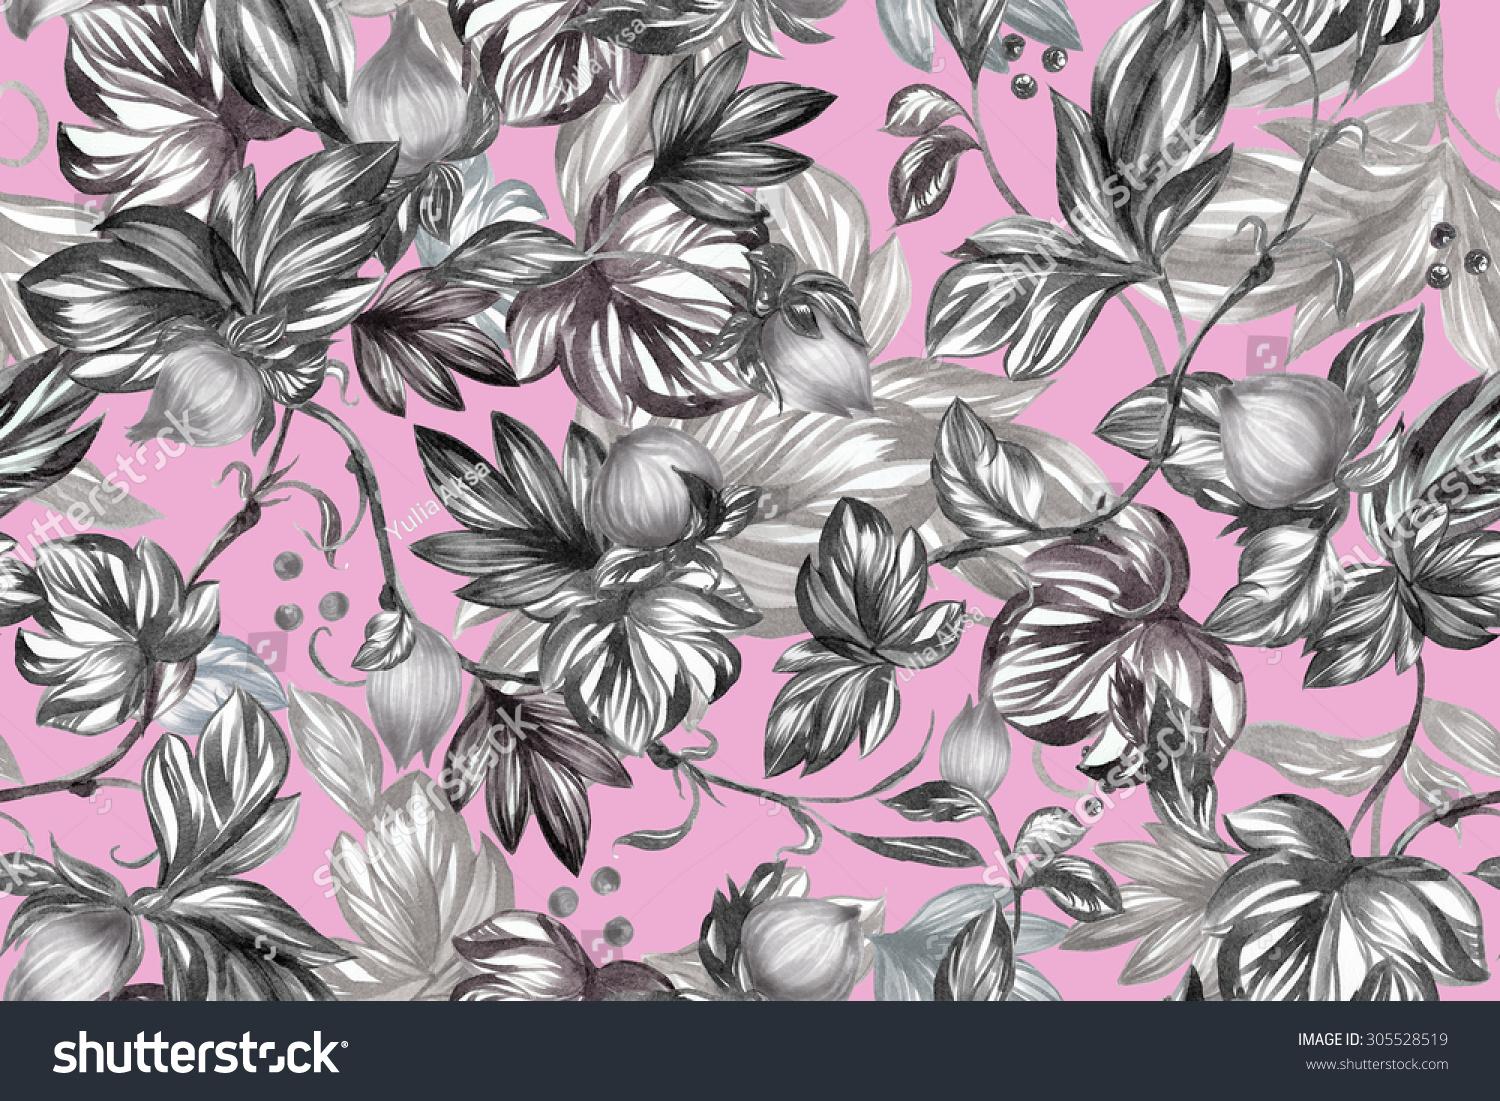 Spring Floral Background Black And White Flowers And Petals On A